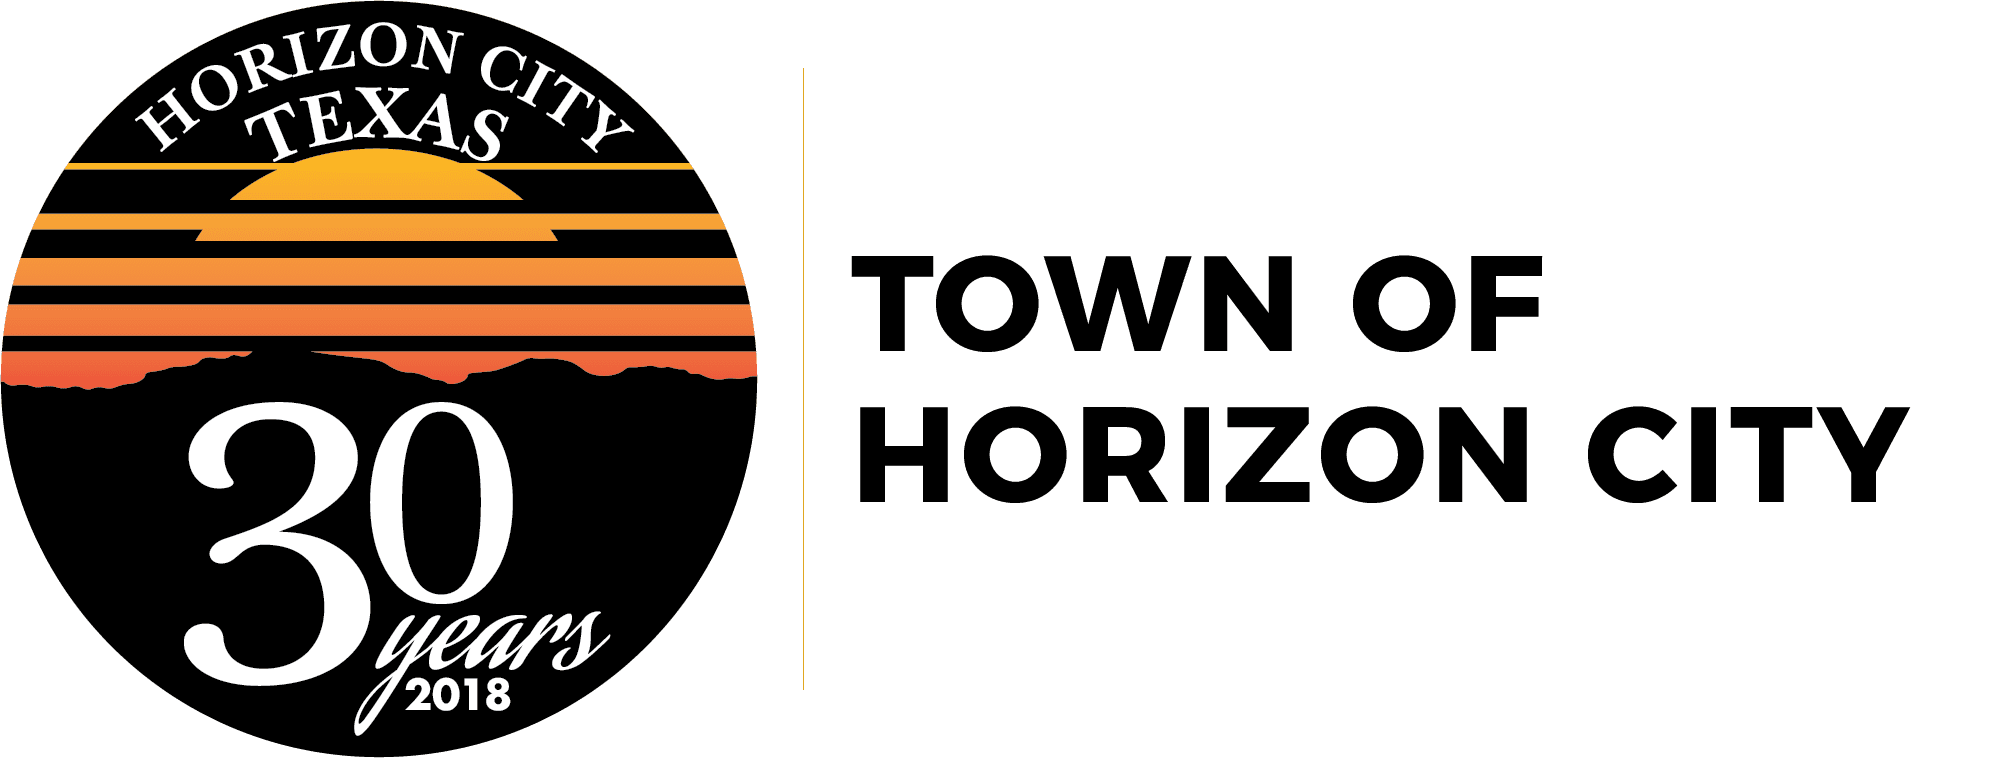 login | Horizon City, Texas Official Website